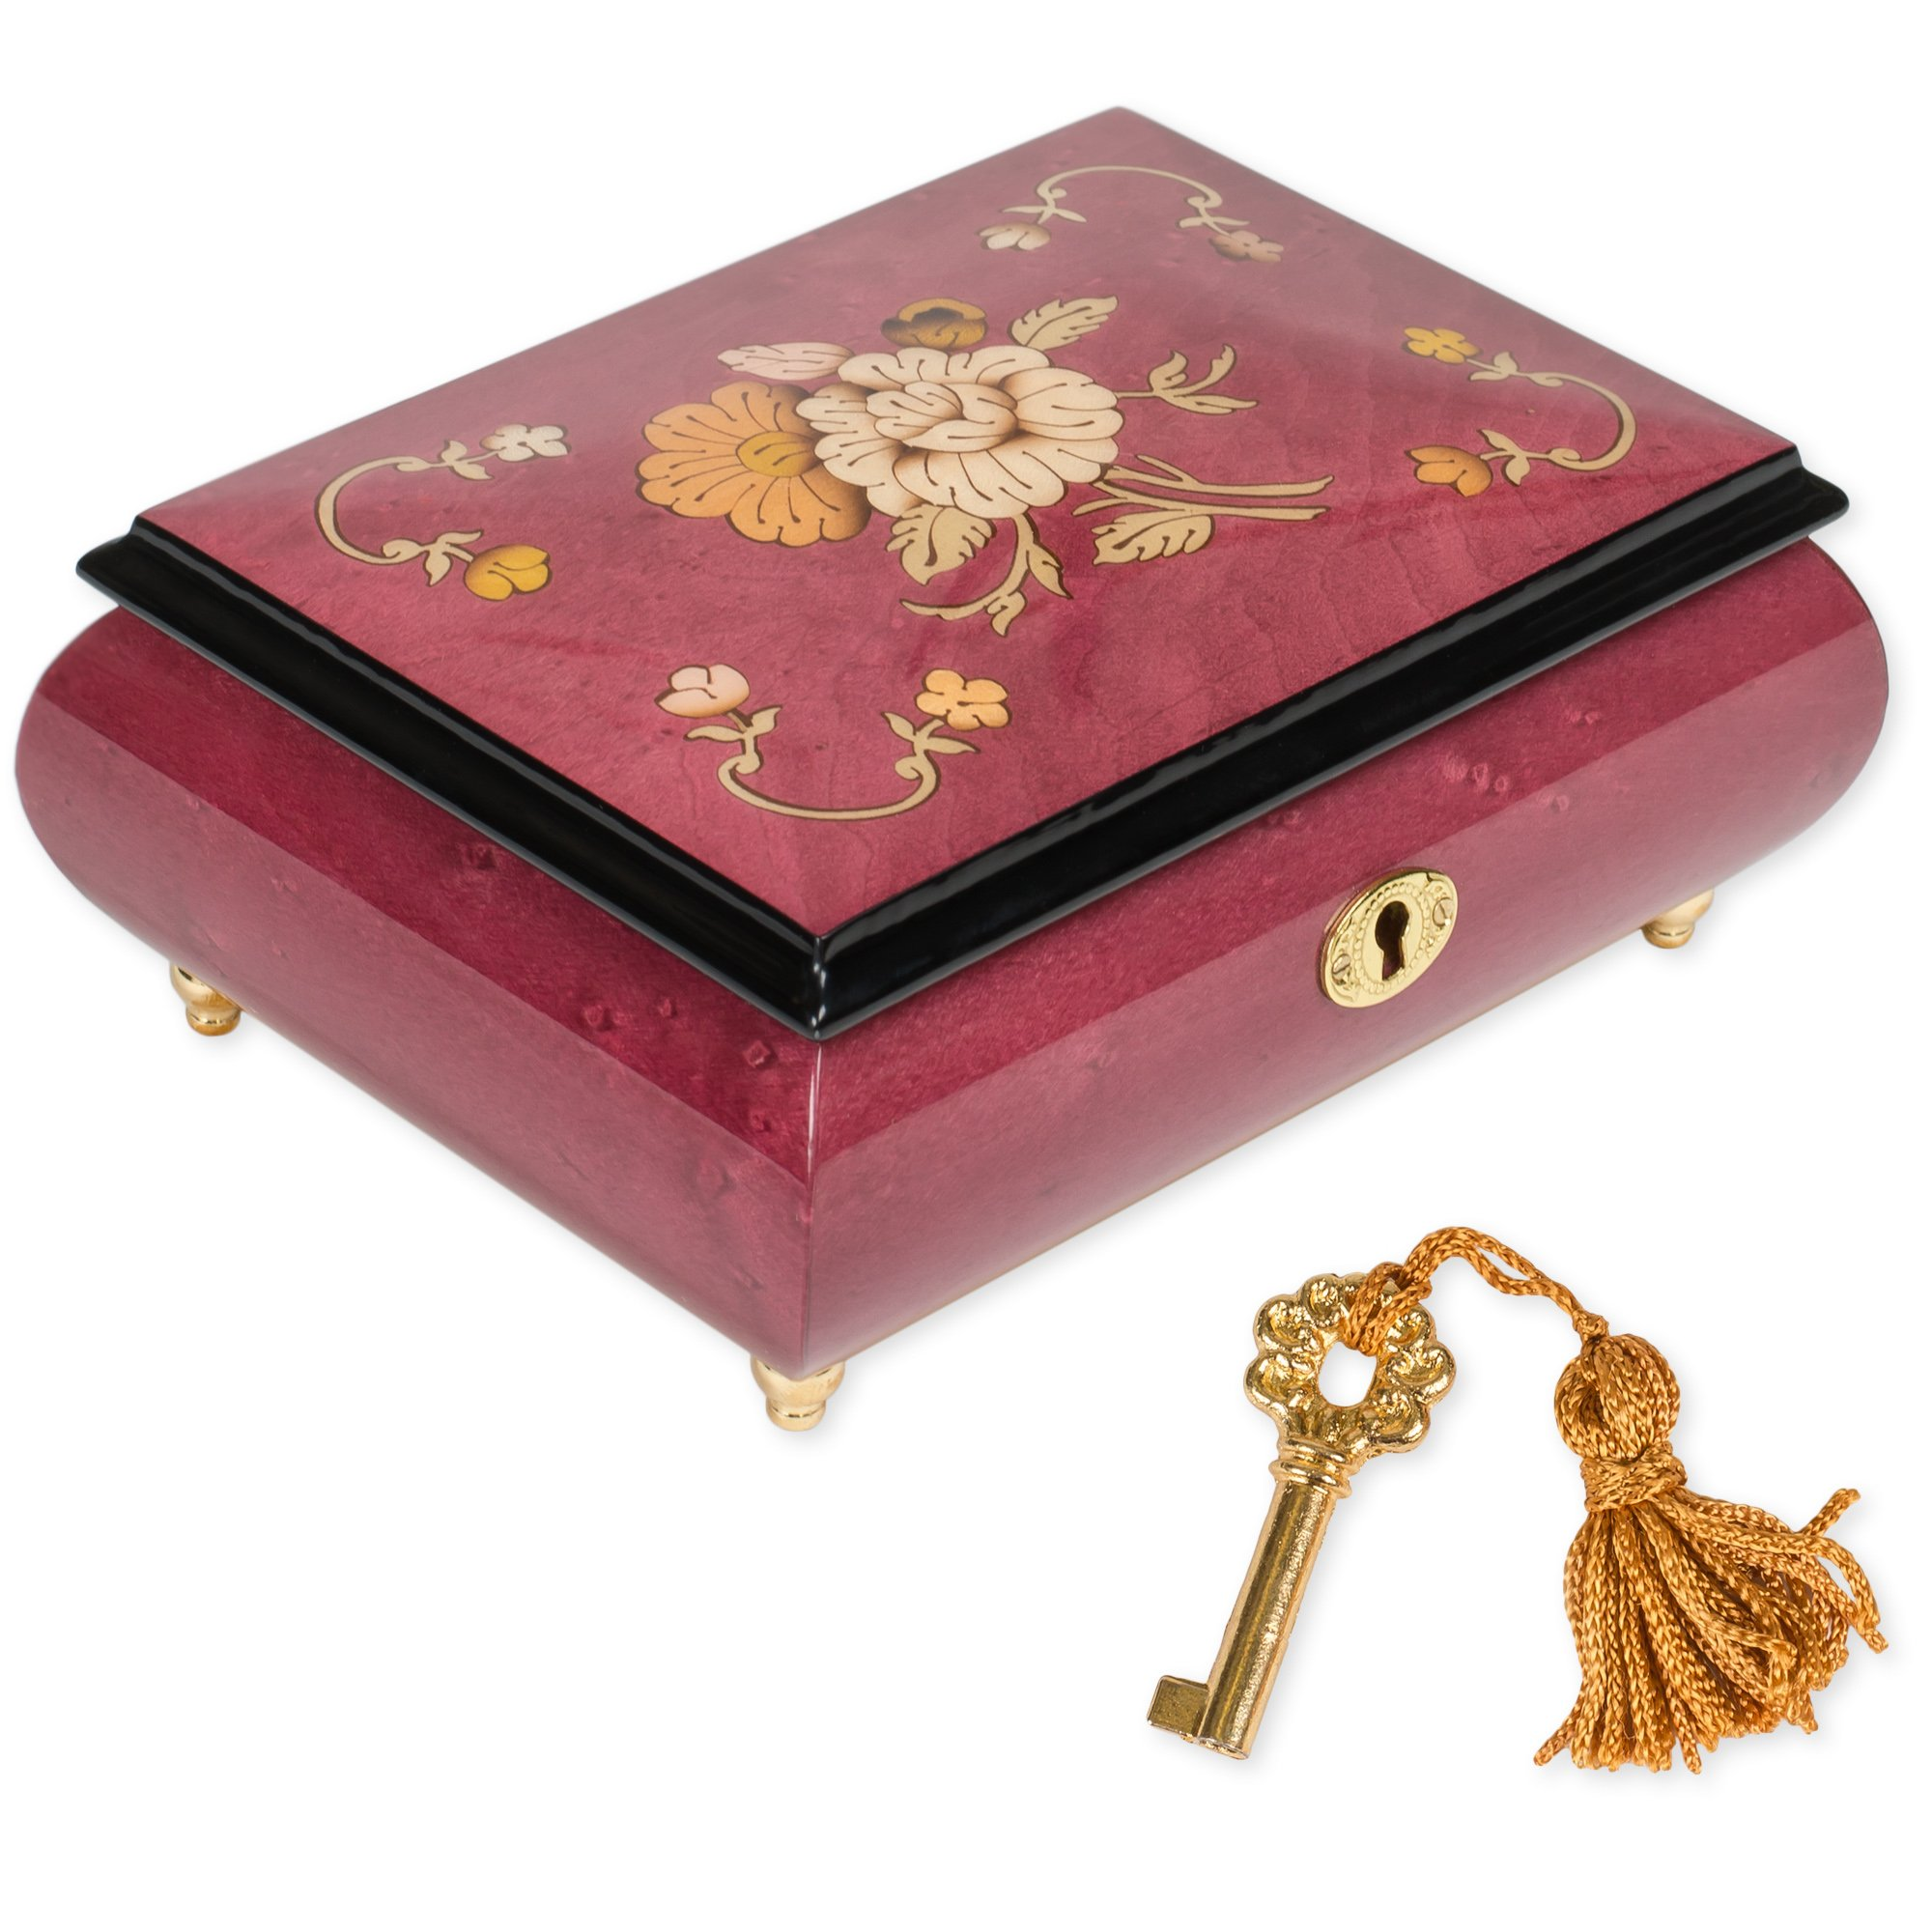 Red Italian Hand Crafted Inlaid Wood Jewelry Music Box Plays Musical Tune Beethoven's Symphony